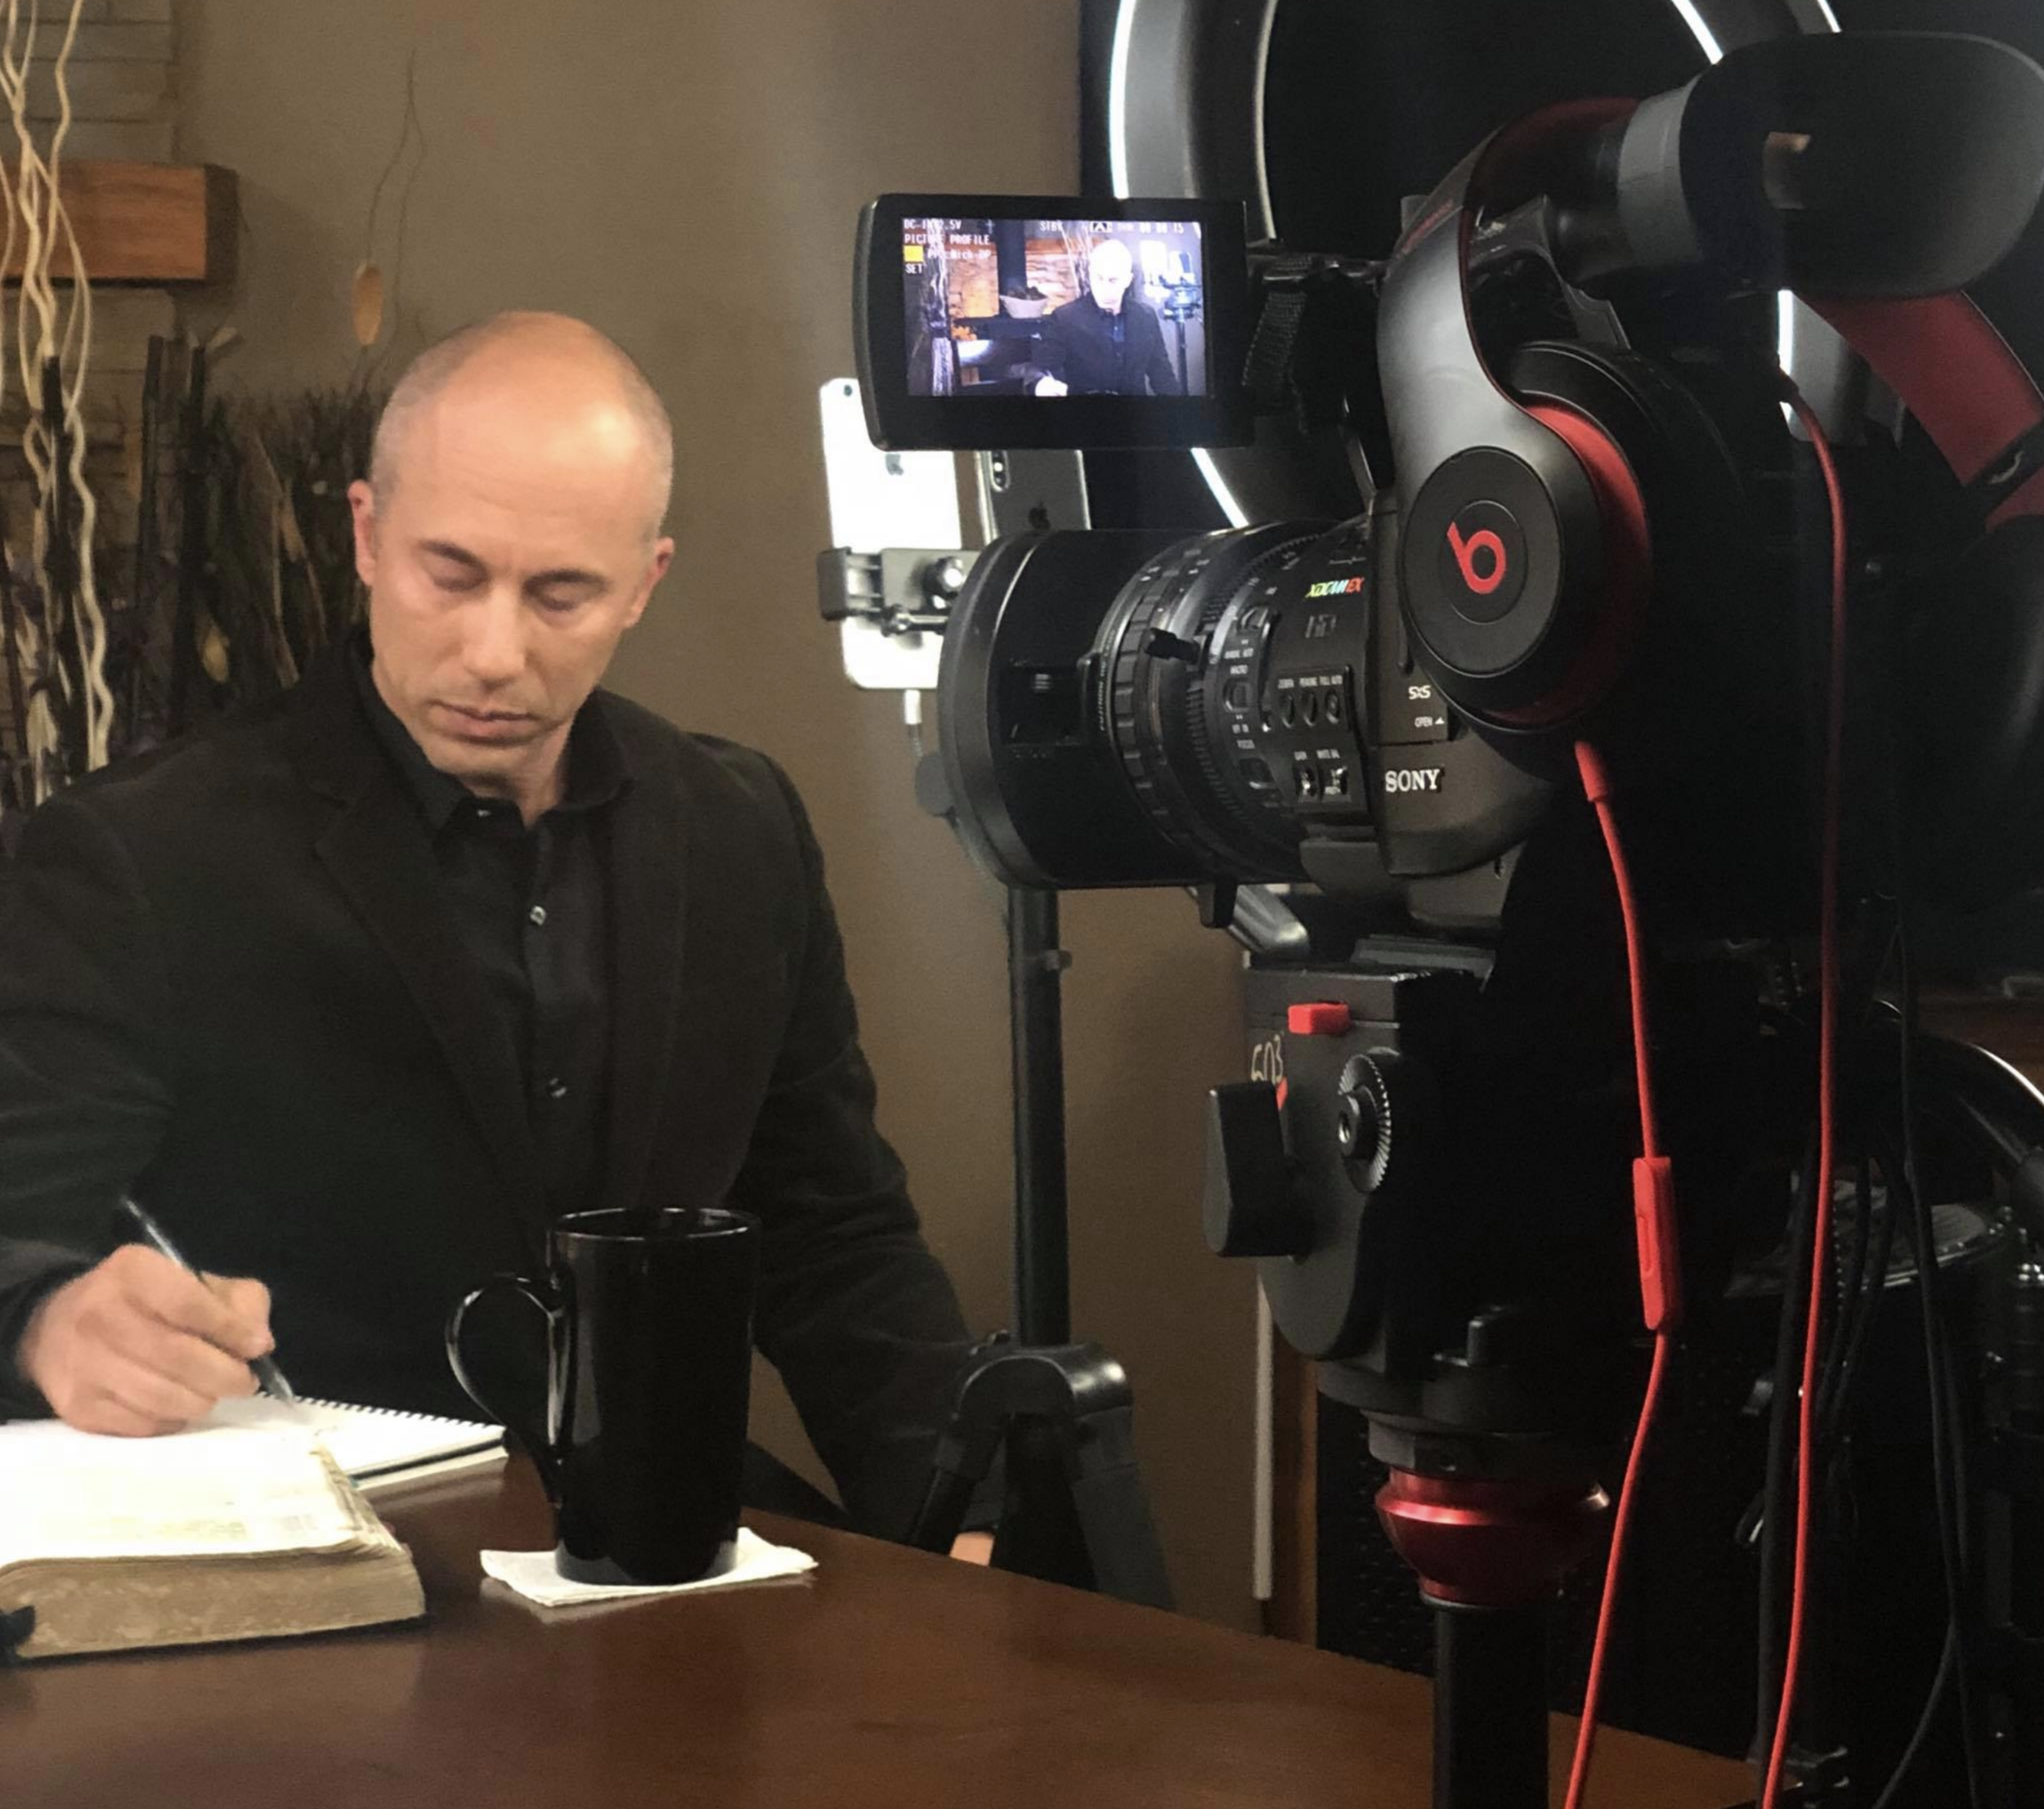 JOIN US EVERY WEEKDAY MORNING LIVE ON FACEBOOK @ 7AM MST - A strong desire for doing a daily morning LIVE Broadcast came alive in my heart. I began simply with some short videos and a live Sunday evening broadcast each week. Then, in January 2018 the Holy Spirit began prompting me each morning with a fresh word to get up and start teaching the Word as I had done for years previously. As a result, we have been doing morning lives most weekday mornings, and we are now approaching our two hundredth episode! This has proven to be a tremendous time of building an online community of Holy Ghost believers, and has been preparing me for the consistency of radio and television.